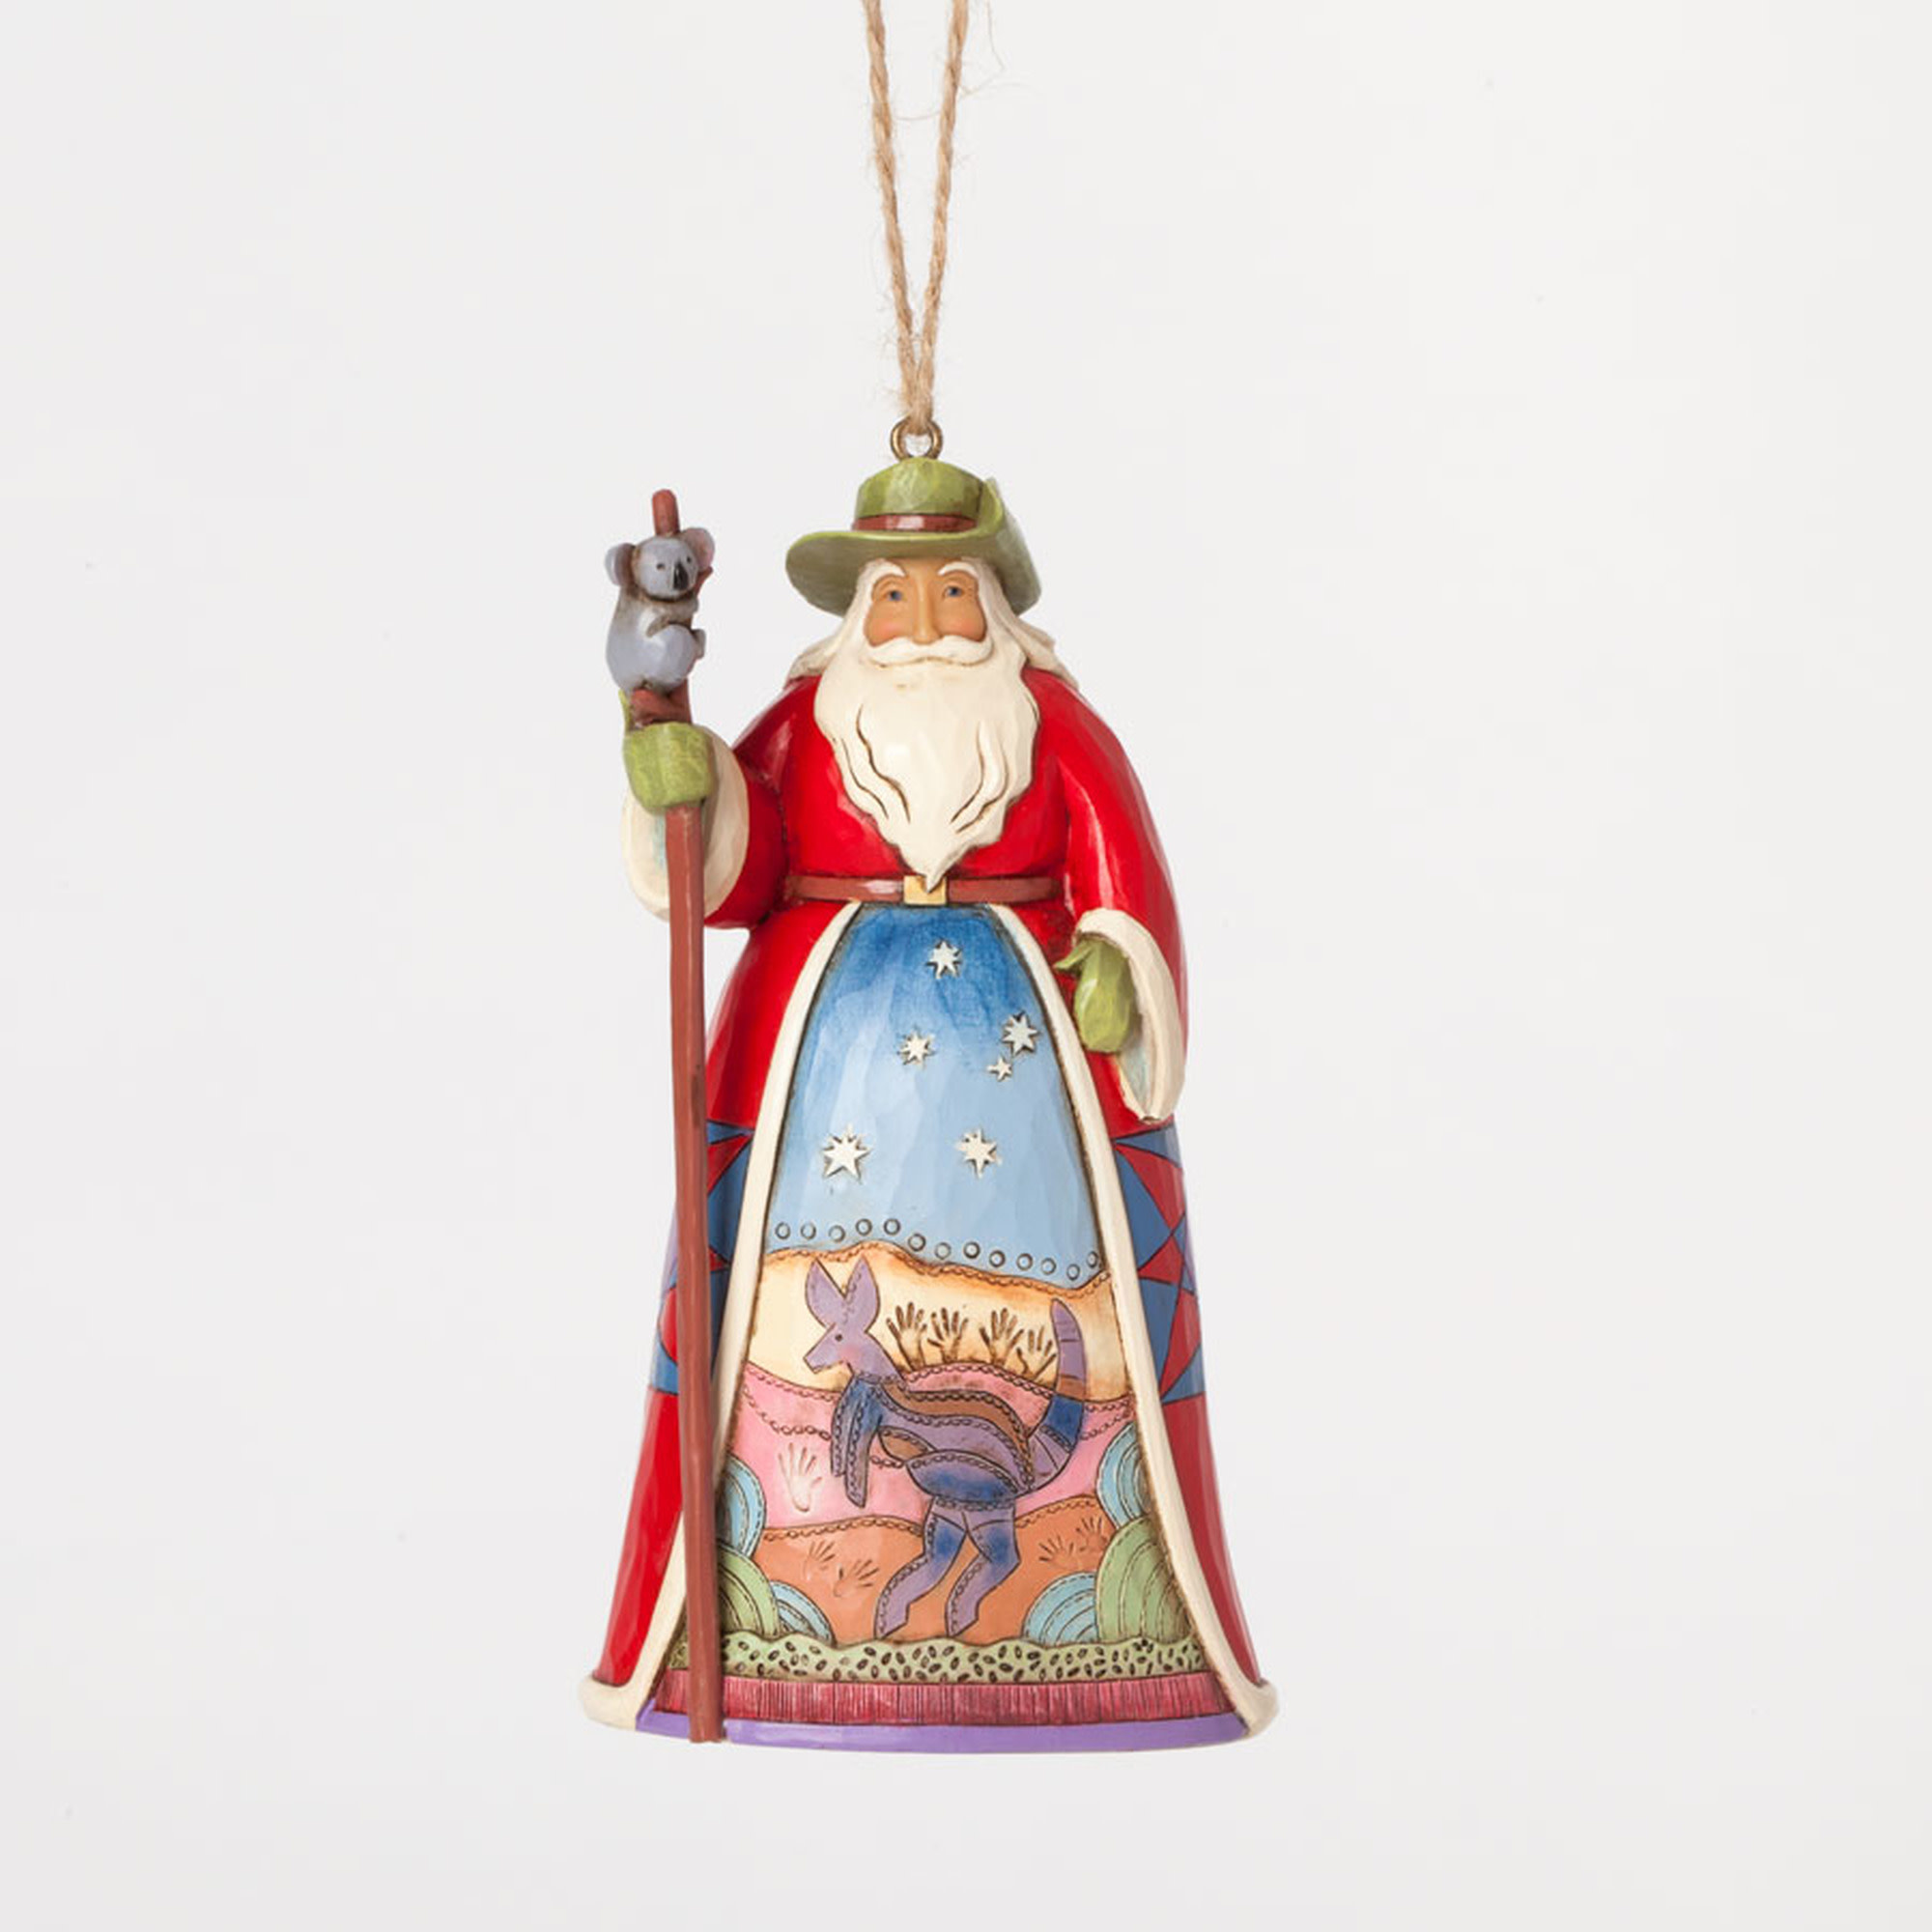 Jim Shore Australian Santa Ornament